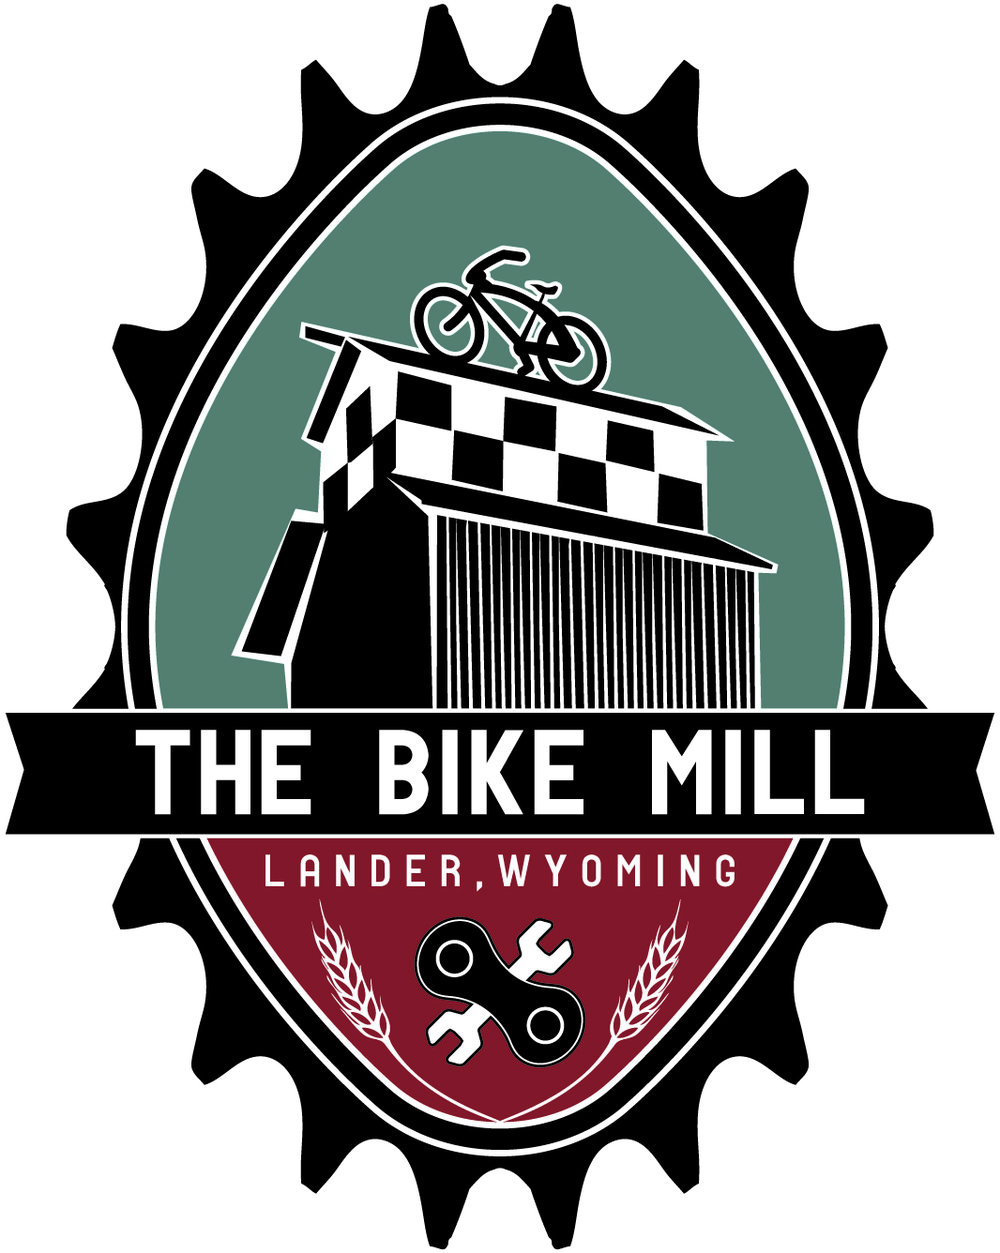 - THE BIKE MILL offers the most competent bike service in Lander along with the best selection of mountain bikes and riding gear. Come in and rent one of our 2019 Ibis demo bikes, with full carbon frame, eagle drivetrain, Fox suspension and carbon wheels, you won't find a better bike to explore our incredible trails on. If you are just looking to kick around town stop in and rent one of our townies to make it easier to get around town.Give your tips a day off and check out the Upper Brewers Trail in a pristine alpine setting traversing the back side of two beautiful lakes you will be glad you did.Visit Trail Forks to see all of the great riding Lander has to offer!